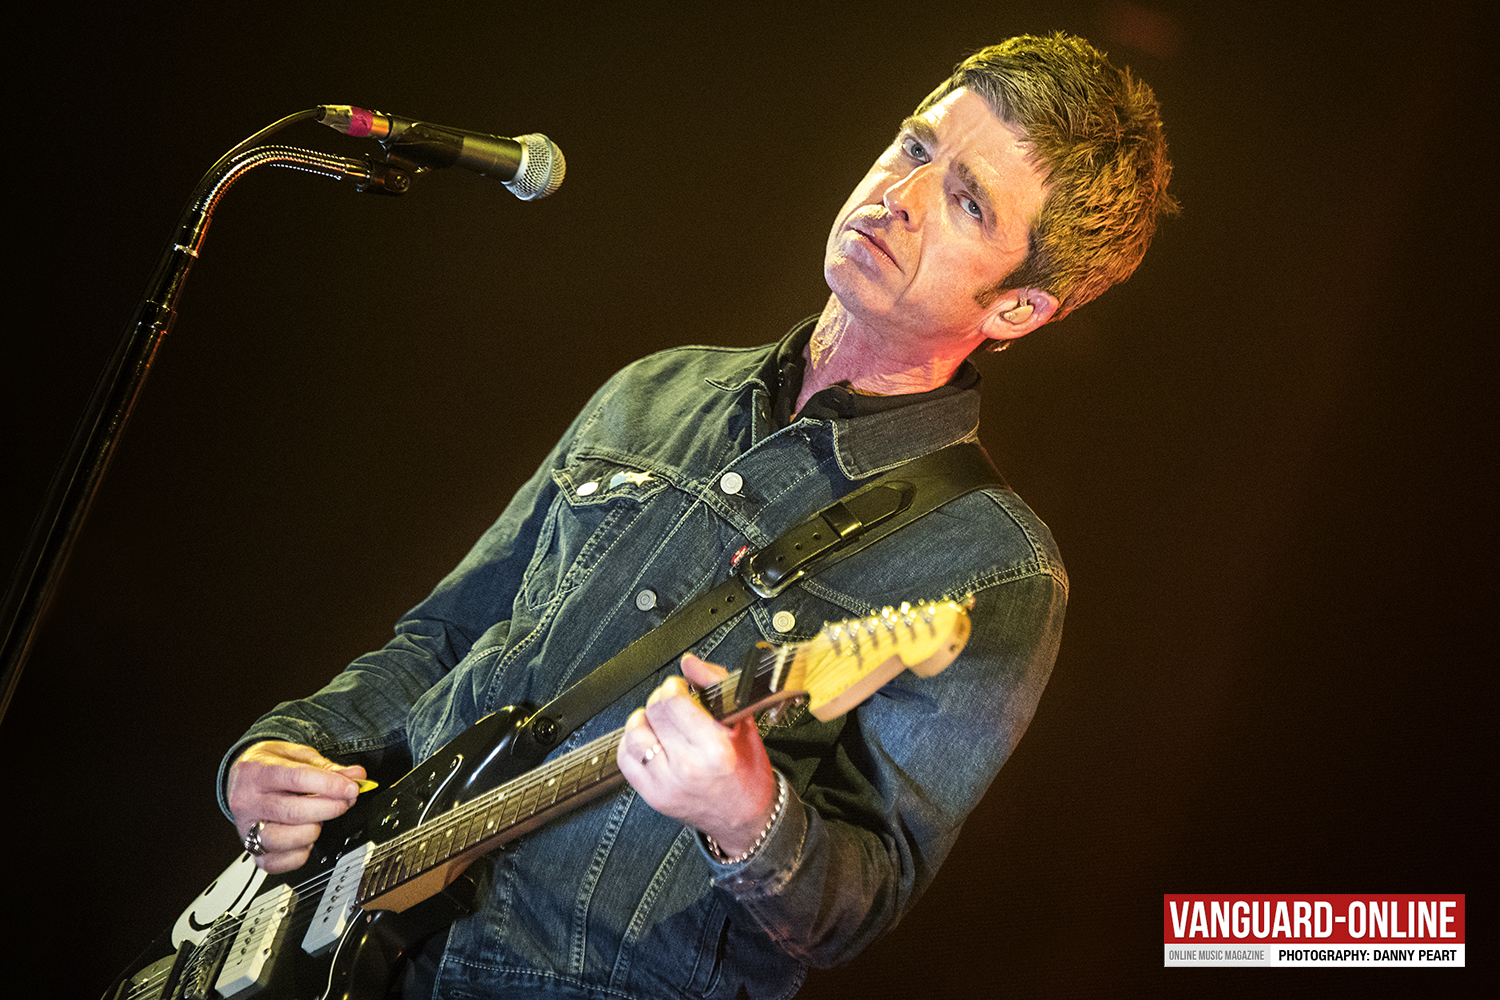 Noel_Gallagher_DANNY_PEART_VO